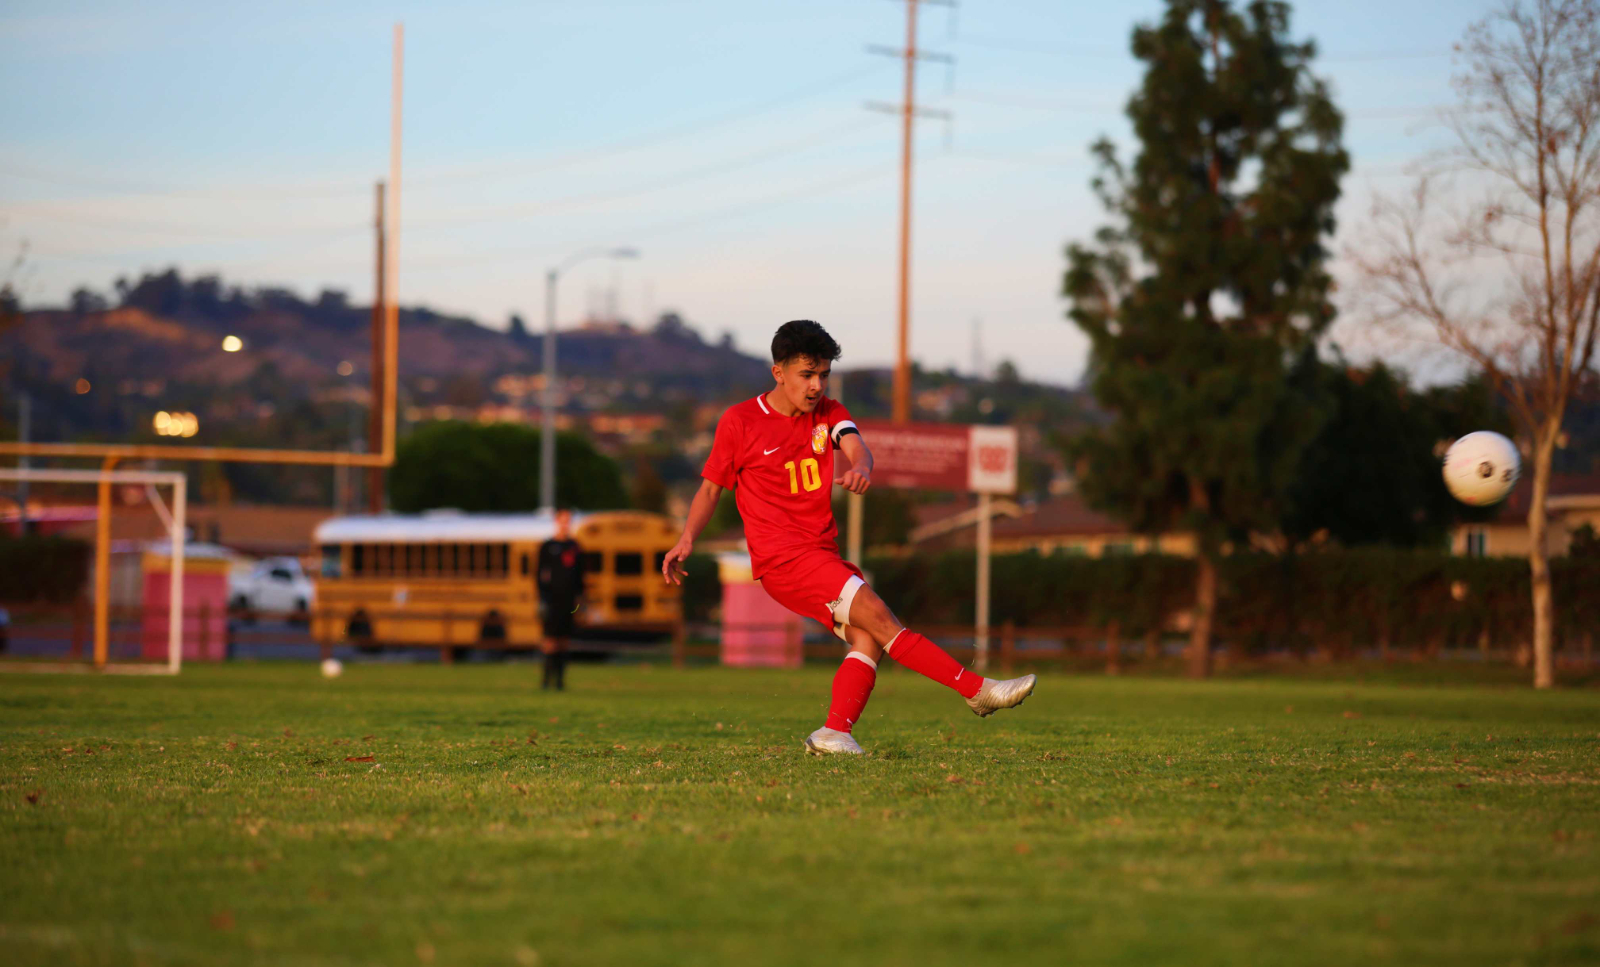 WCHS Varsity Boys Soccer vs. Cantwell Pictures (Volume 4)